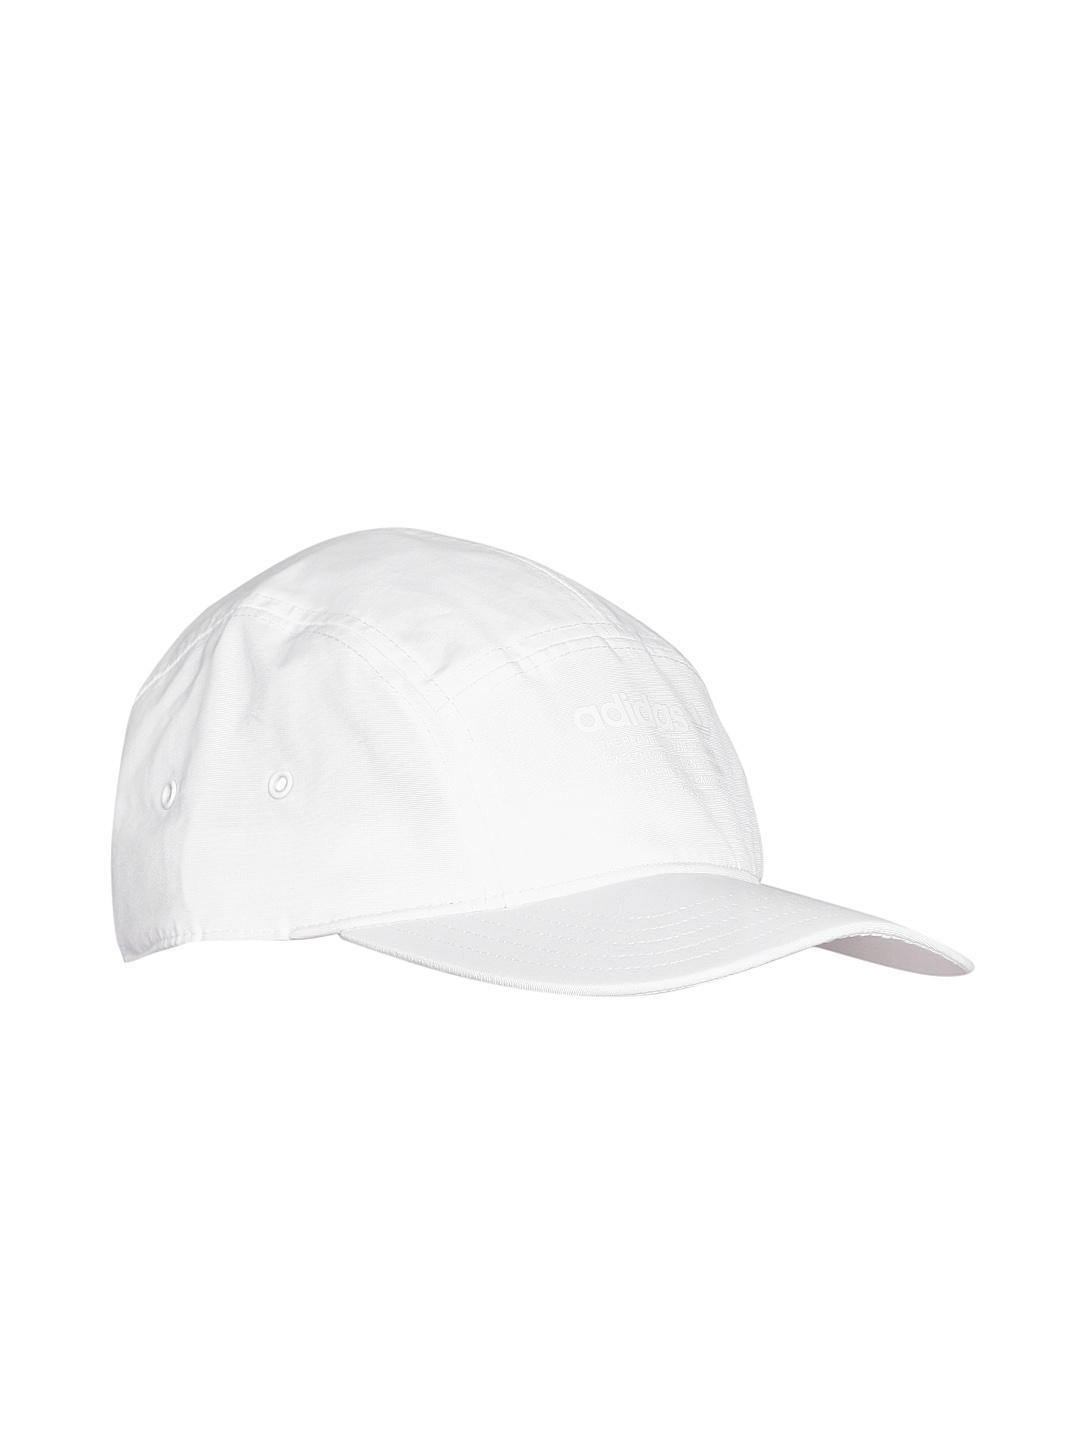 Buy ADIDAS Originals Unisex White NMD 5 Panel Cap - Caps for Unisex ... 41657f590a98